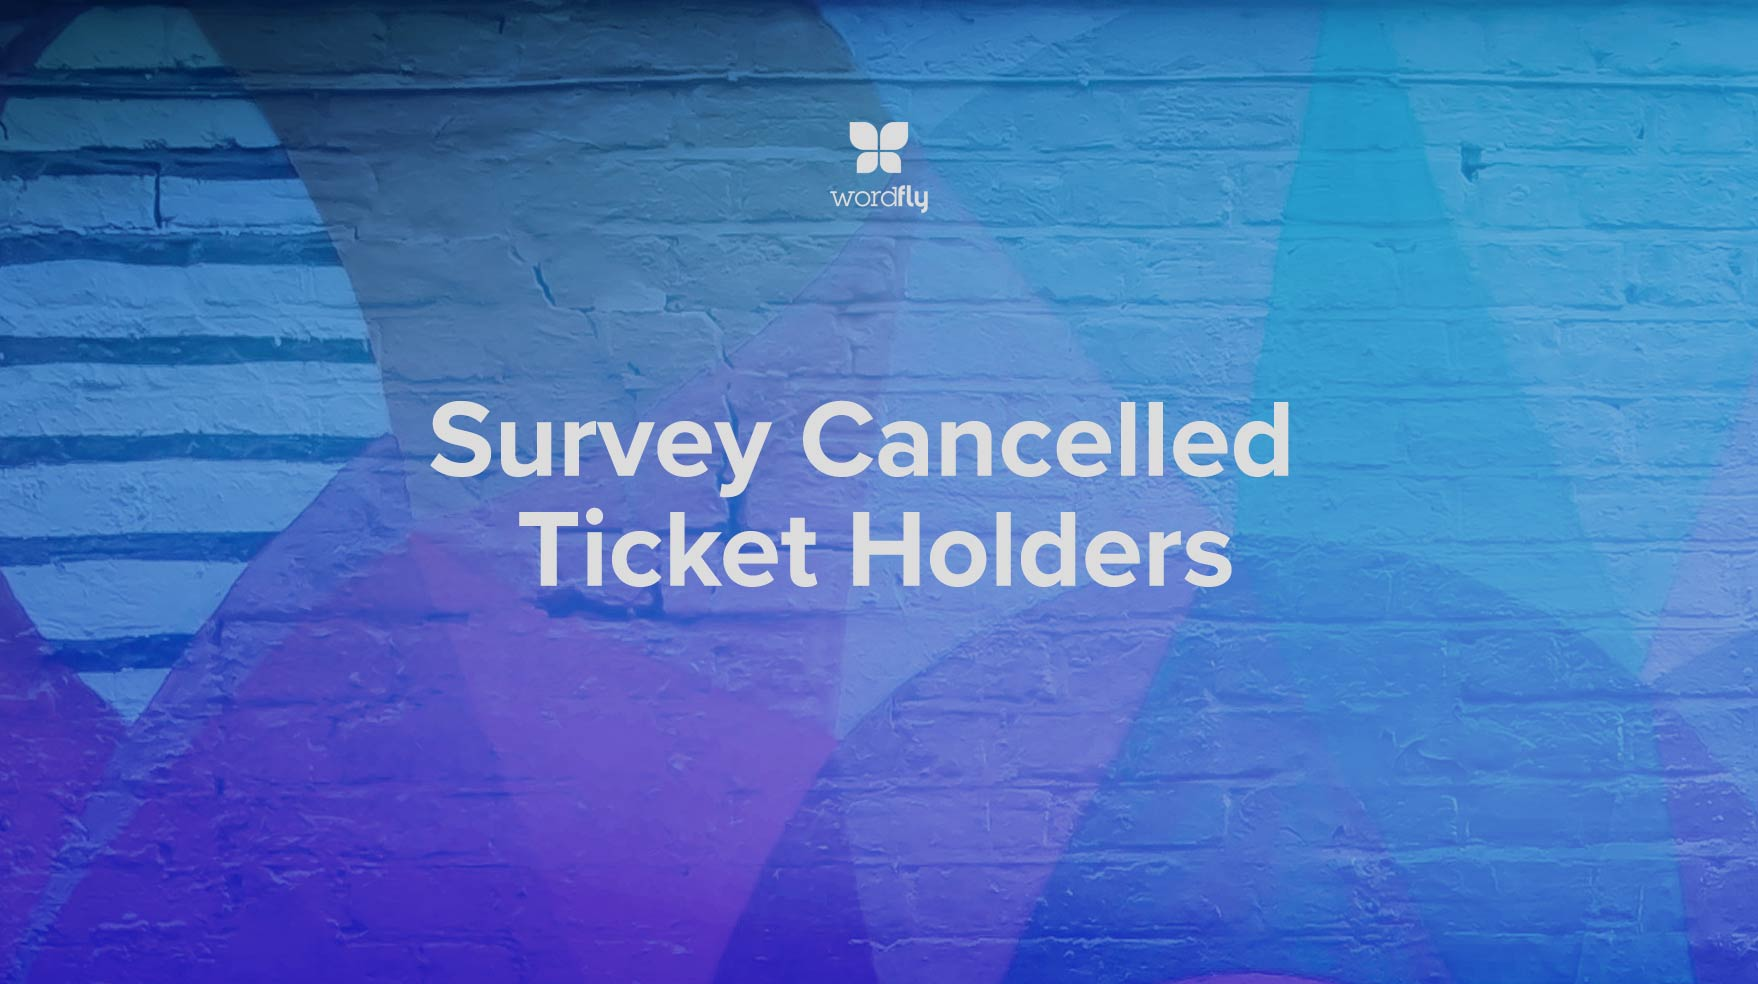 Survey Cancelled Ticket Holders